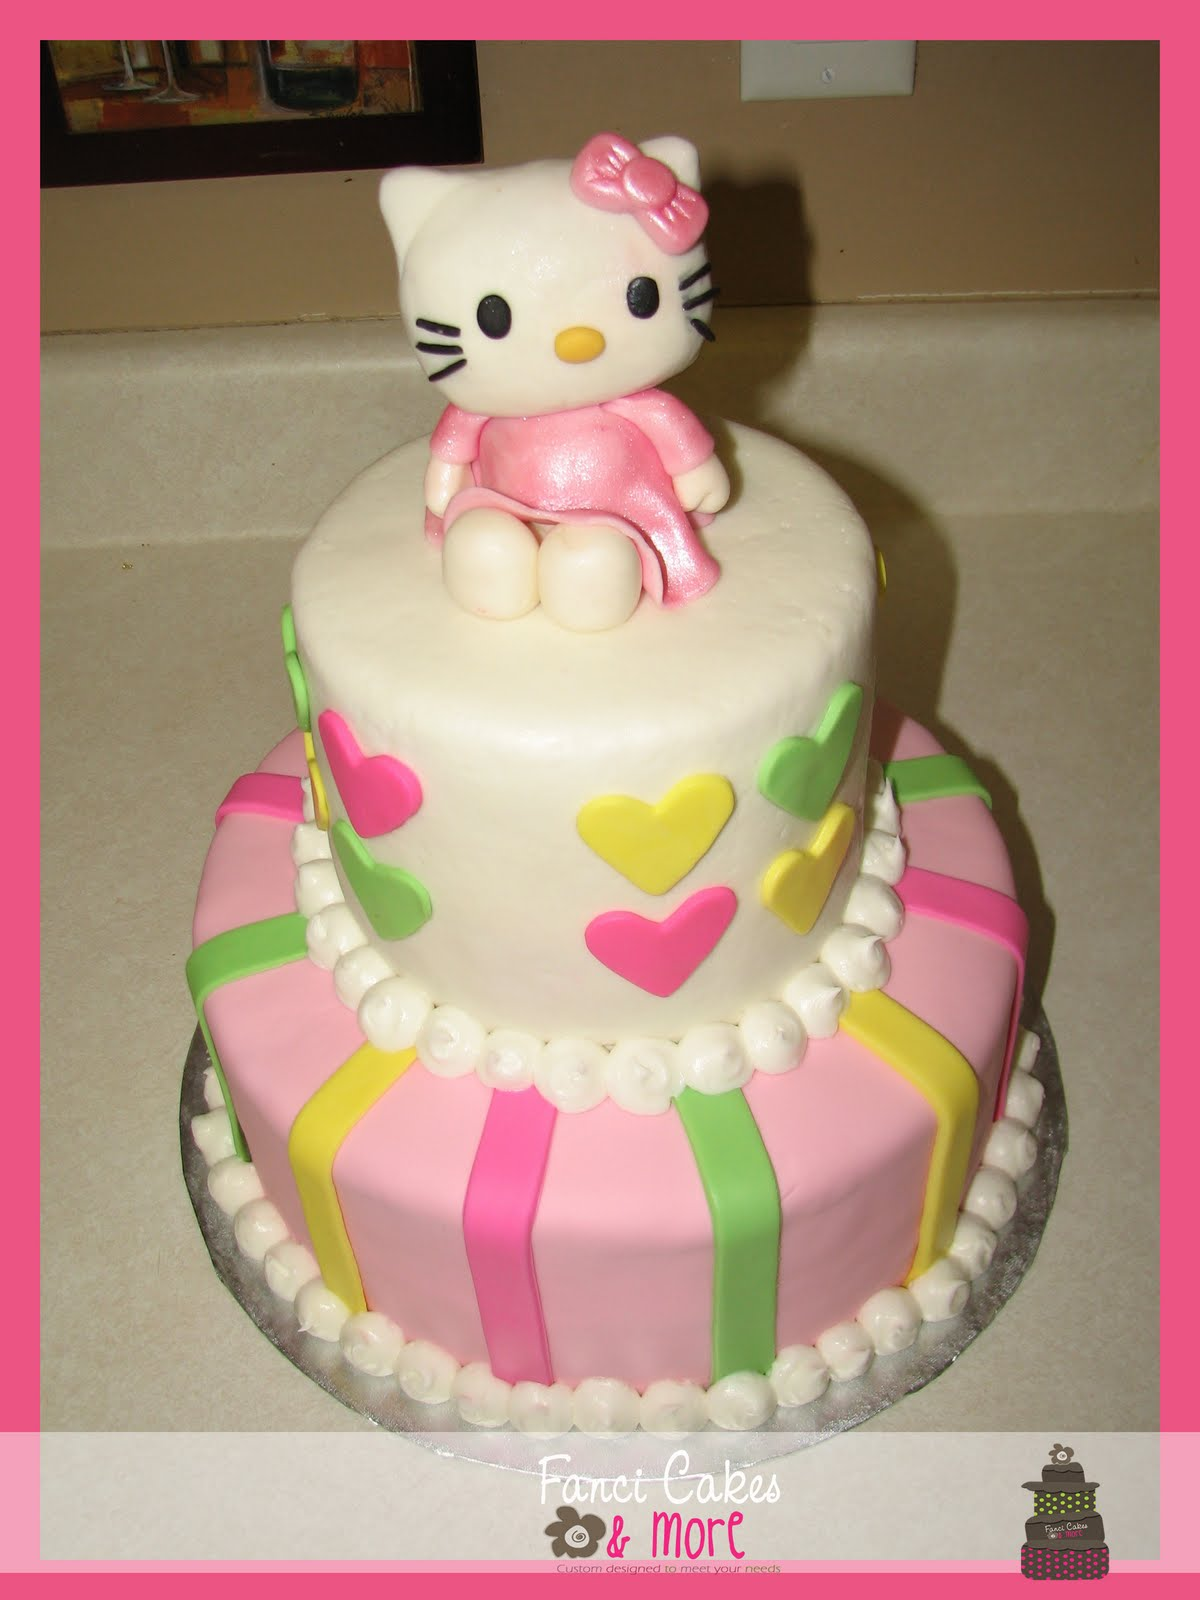 fanci cakes more hello kitty baby shower cake